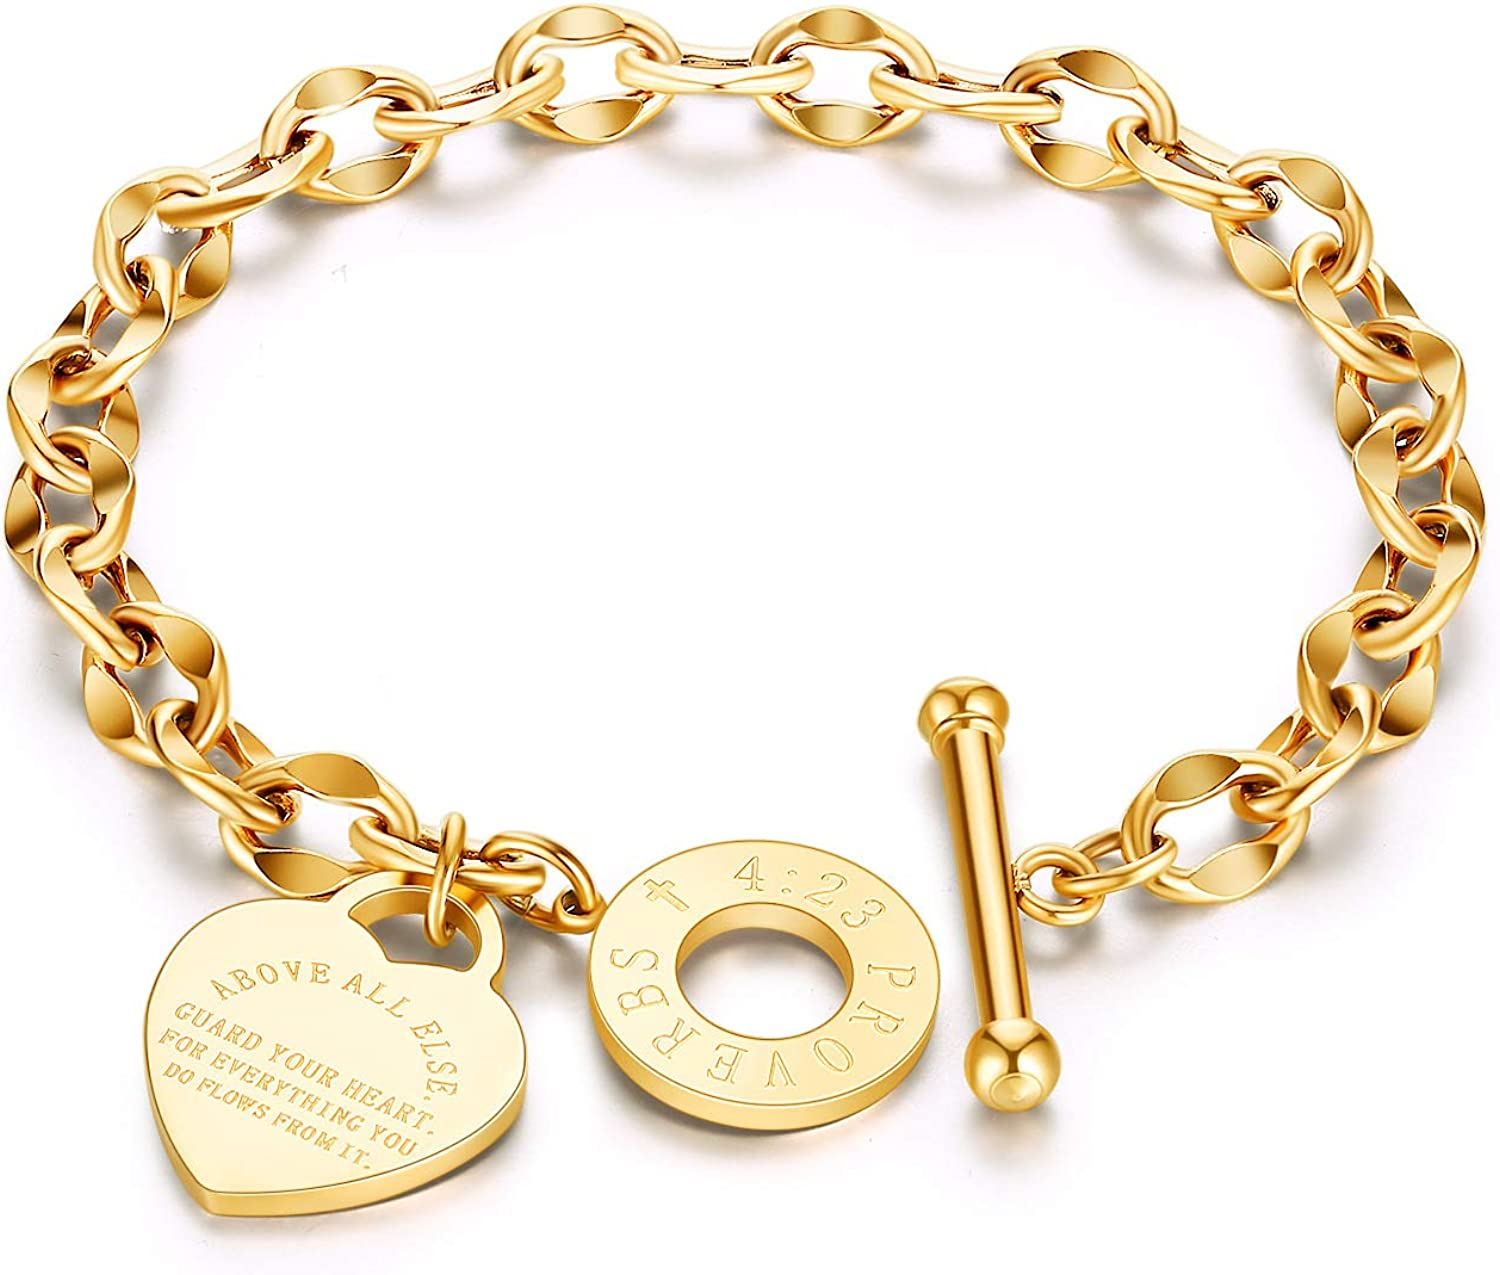 Bracelets for Womens Rose Gold Elegant Jewellery Box Every Special Moment Is the best choice for women